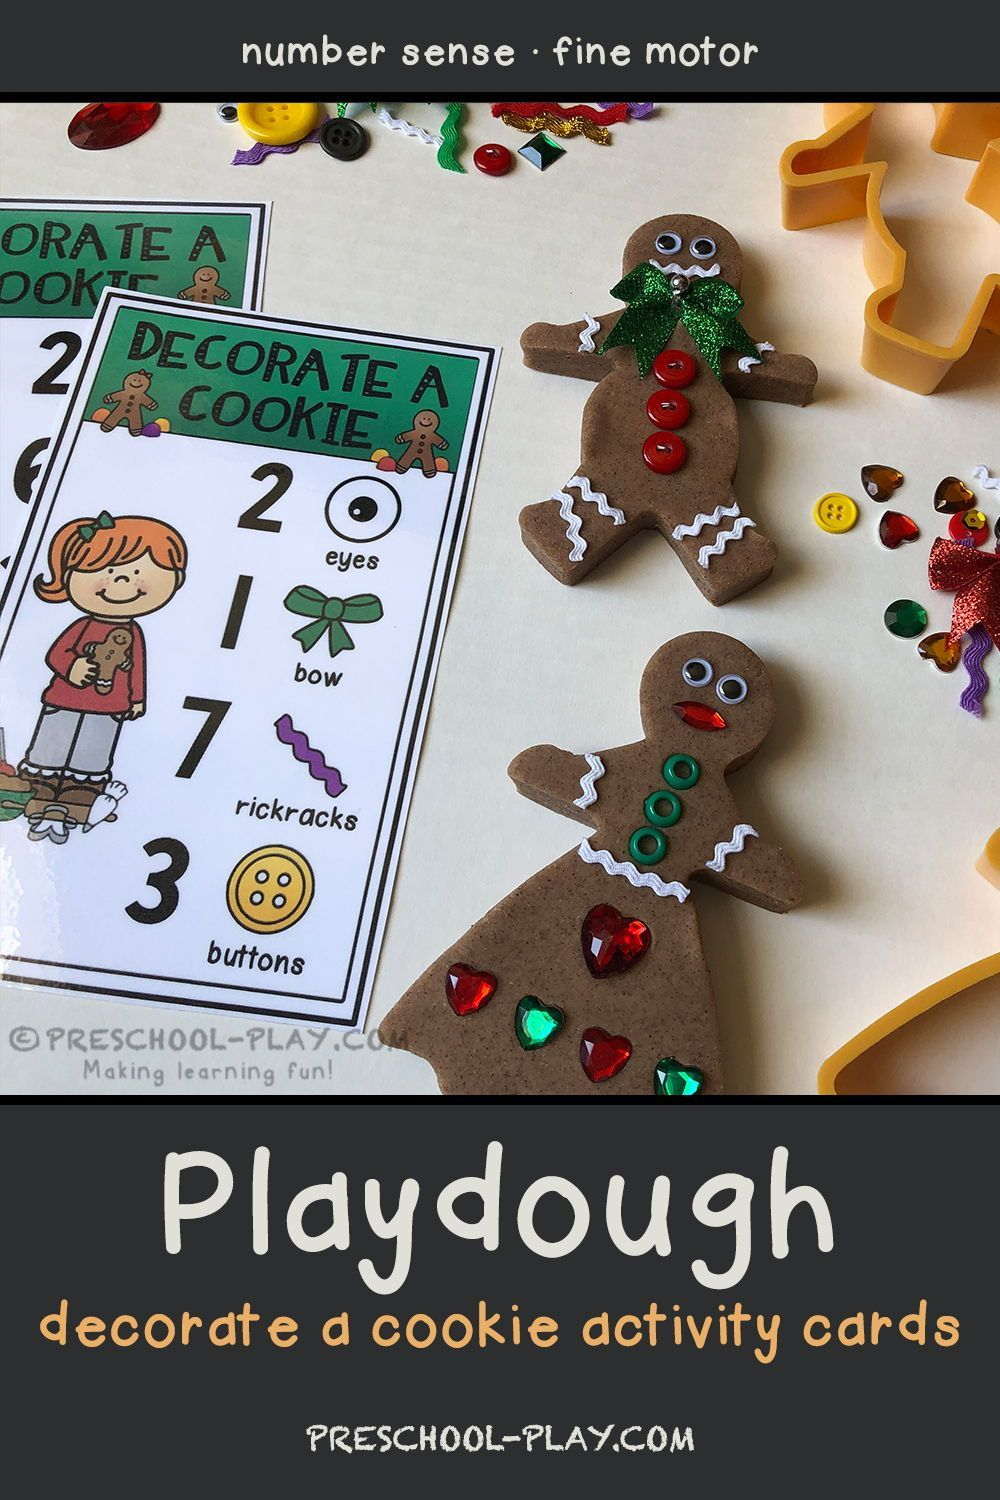 Decorate a Gingerbread Cookie Playdough Activity C